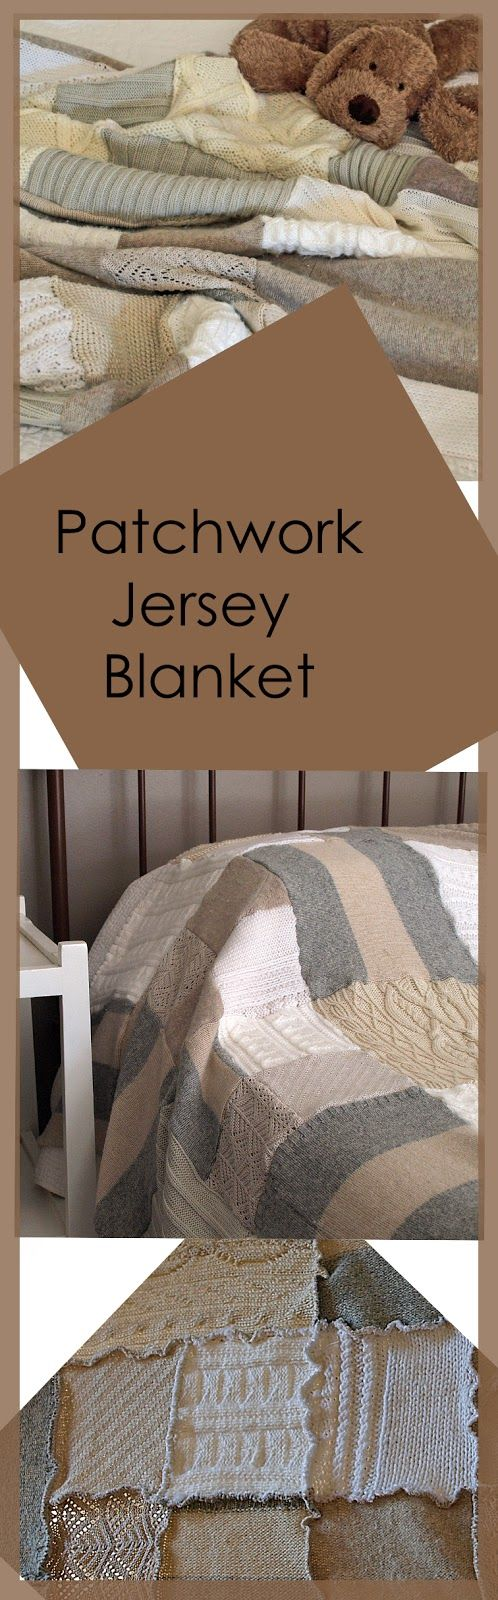 The blanket is made from many vintage jerseys collected over a few months.